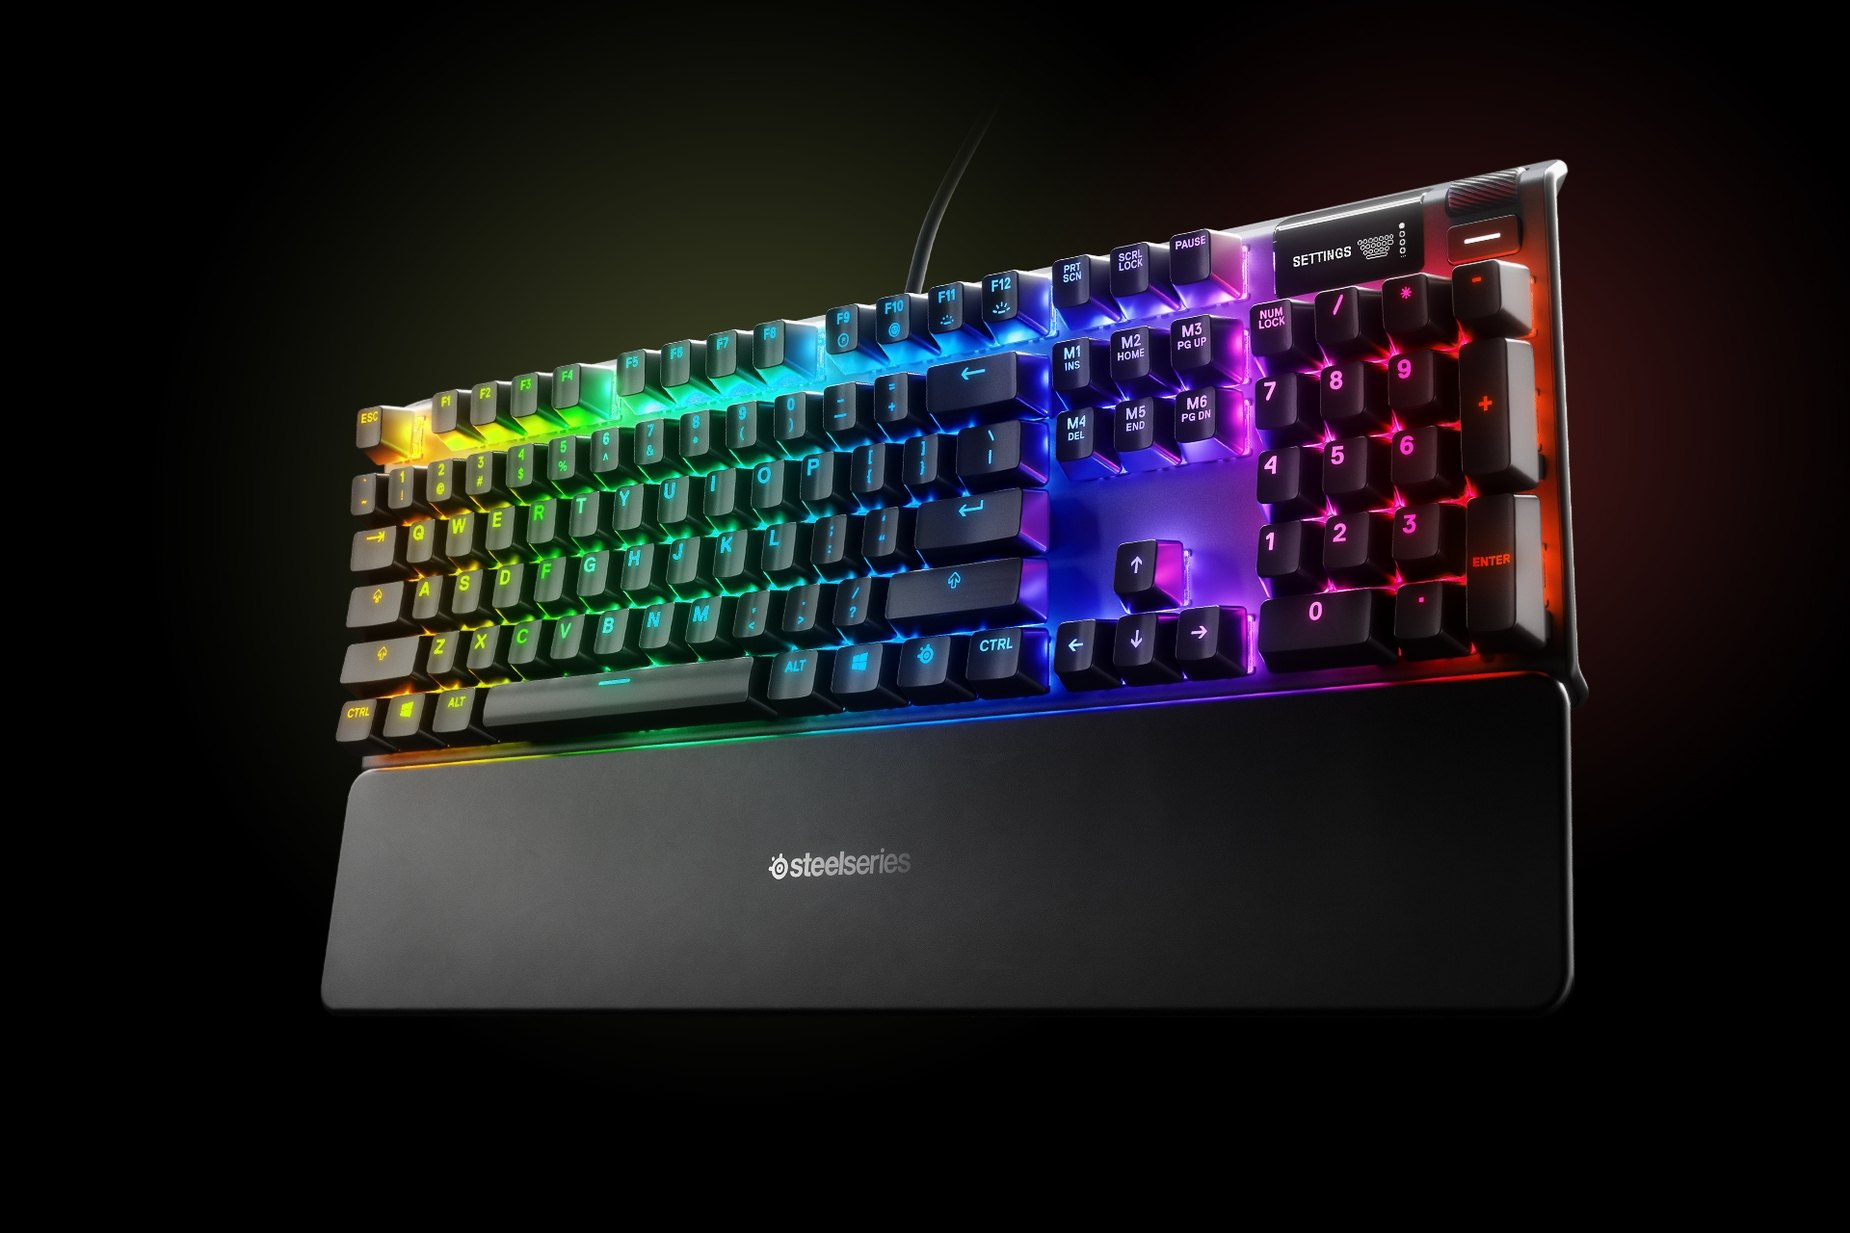 Nordic - Apex 7 (Blue Switch) gaming keyboard with the illumination lit up on dark background, also shows the OLED screen and controls used to change settings and adjust audio